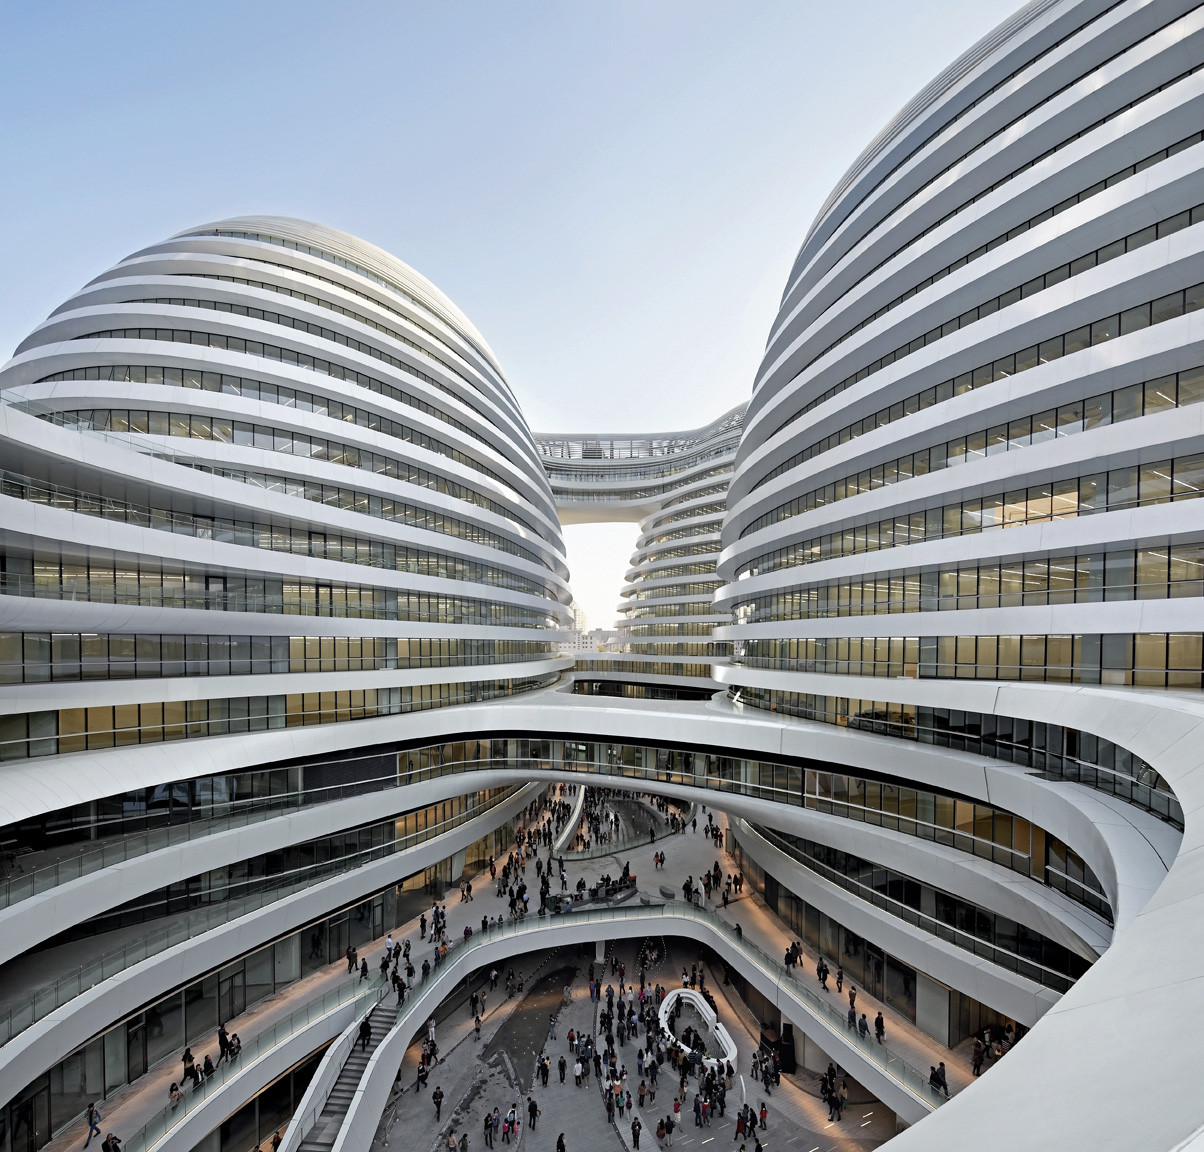 Galaxy soho zaha hadid architects by hufton crow archdaily - Soho architekten ...